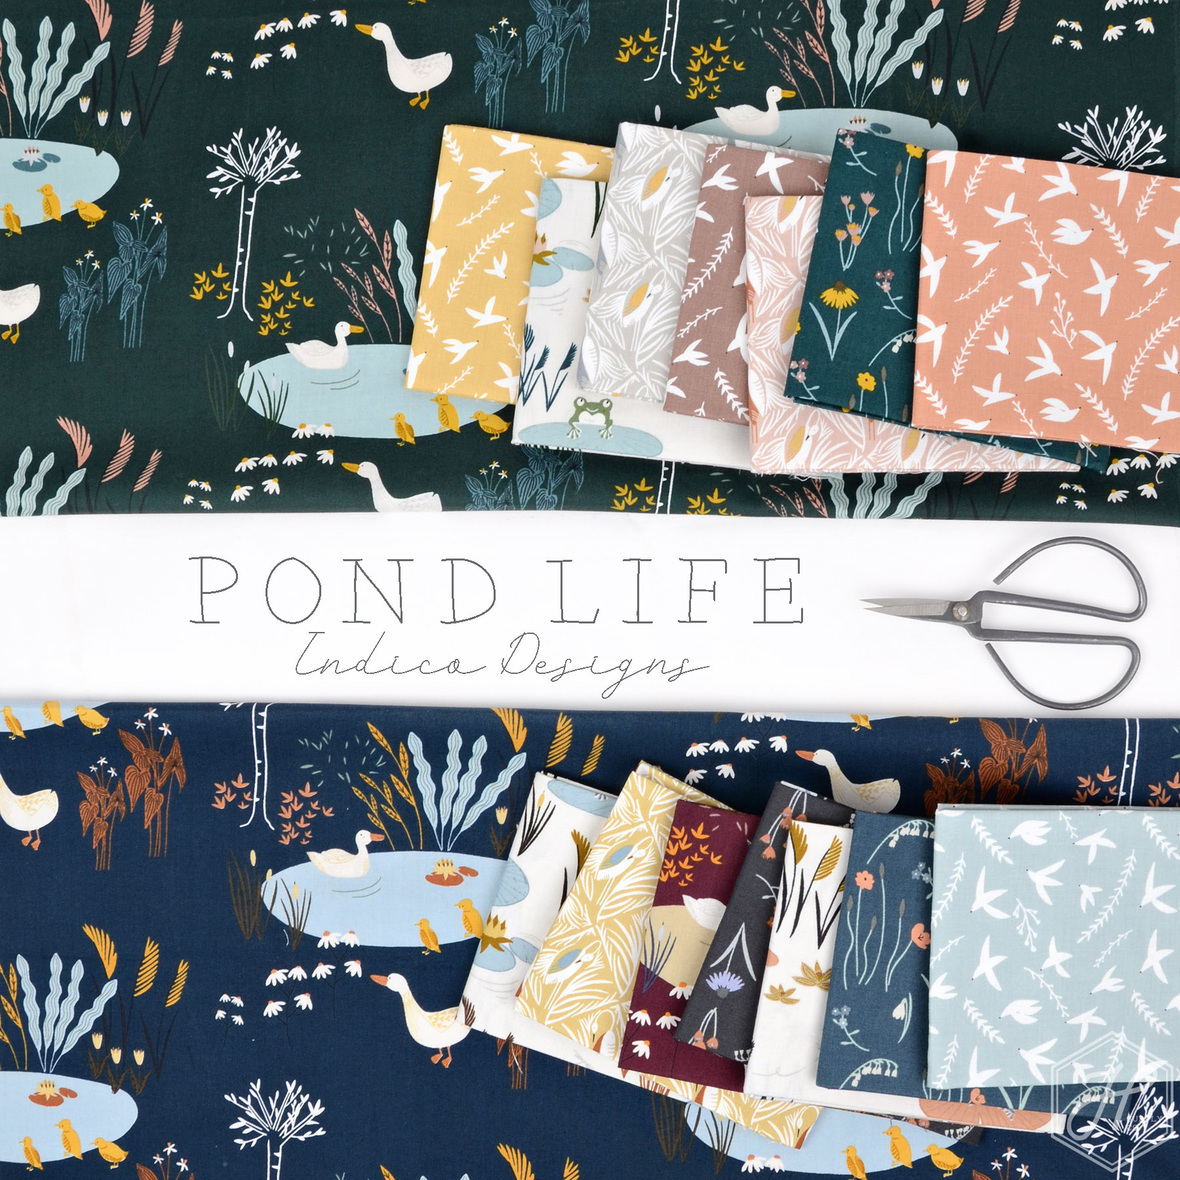 Indica Designs Pond Life for RJR fabric at Hawthorne Supply Co